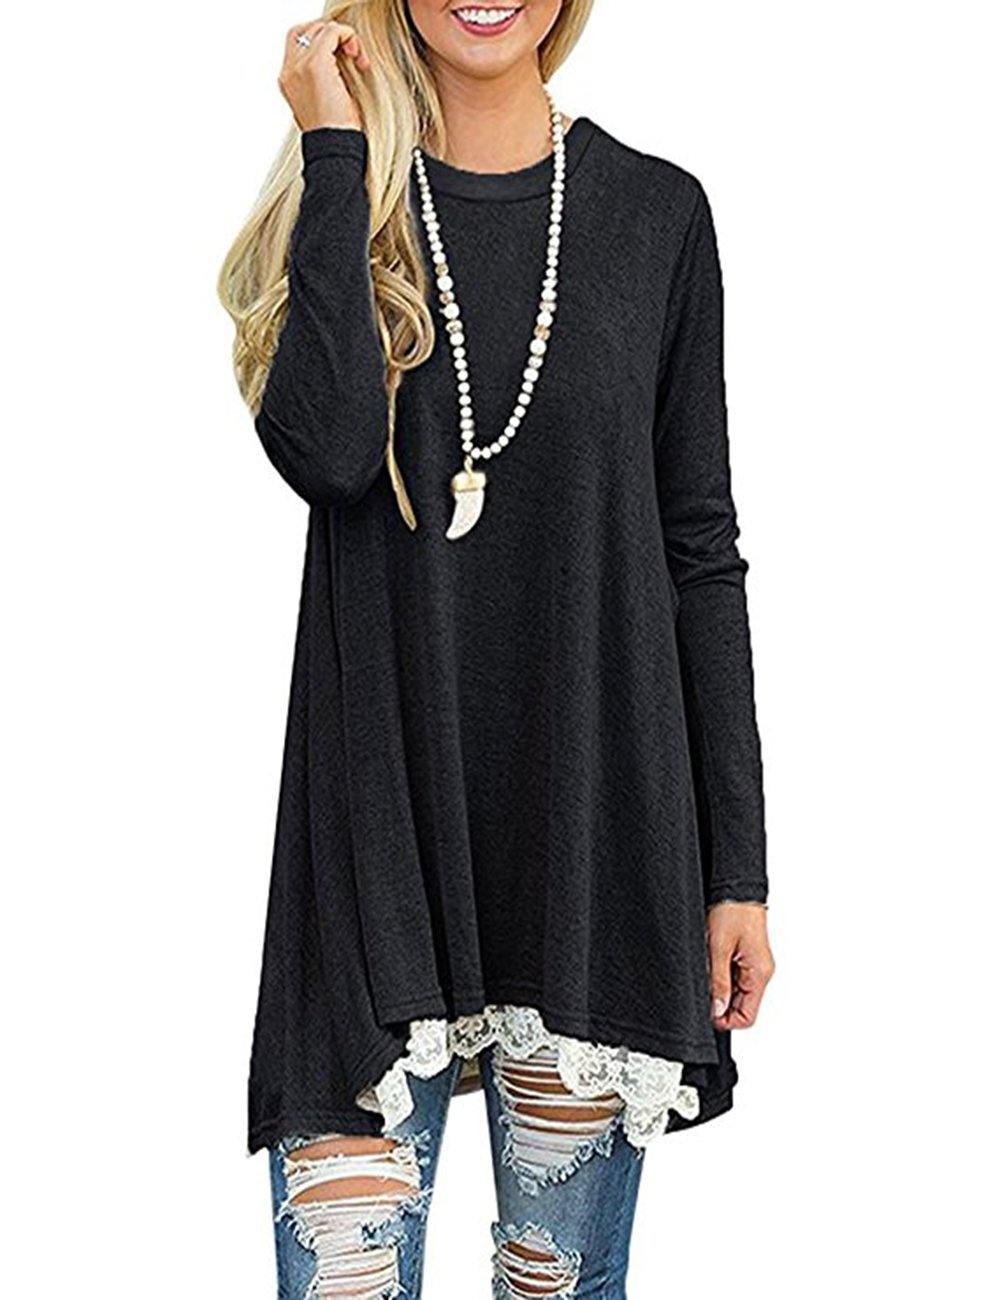 Black Women's Long Sleeve Lace Tunic Top Blouse Casual Swing Tunic Shirt Dress (bluee, XL)